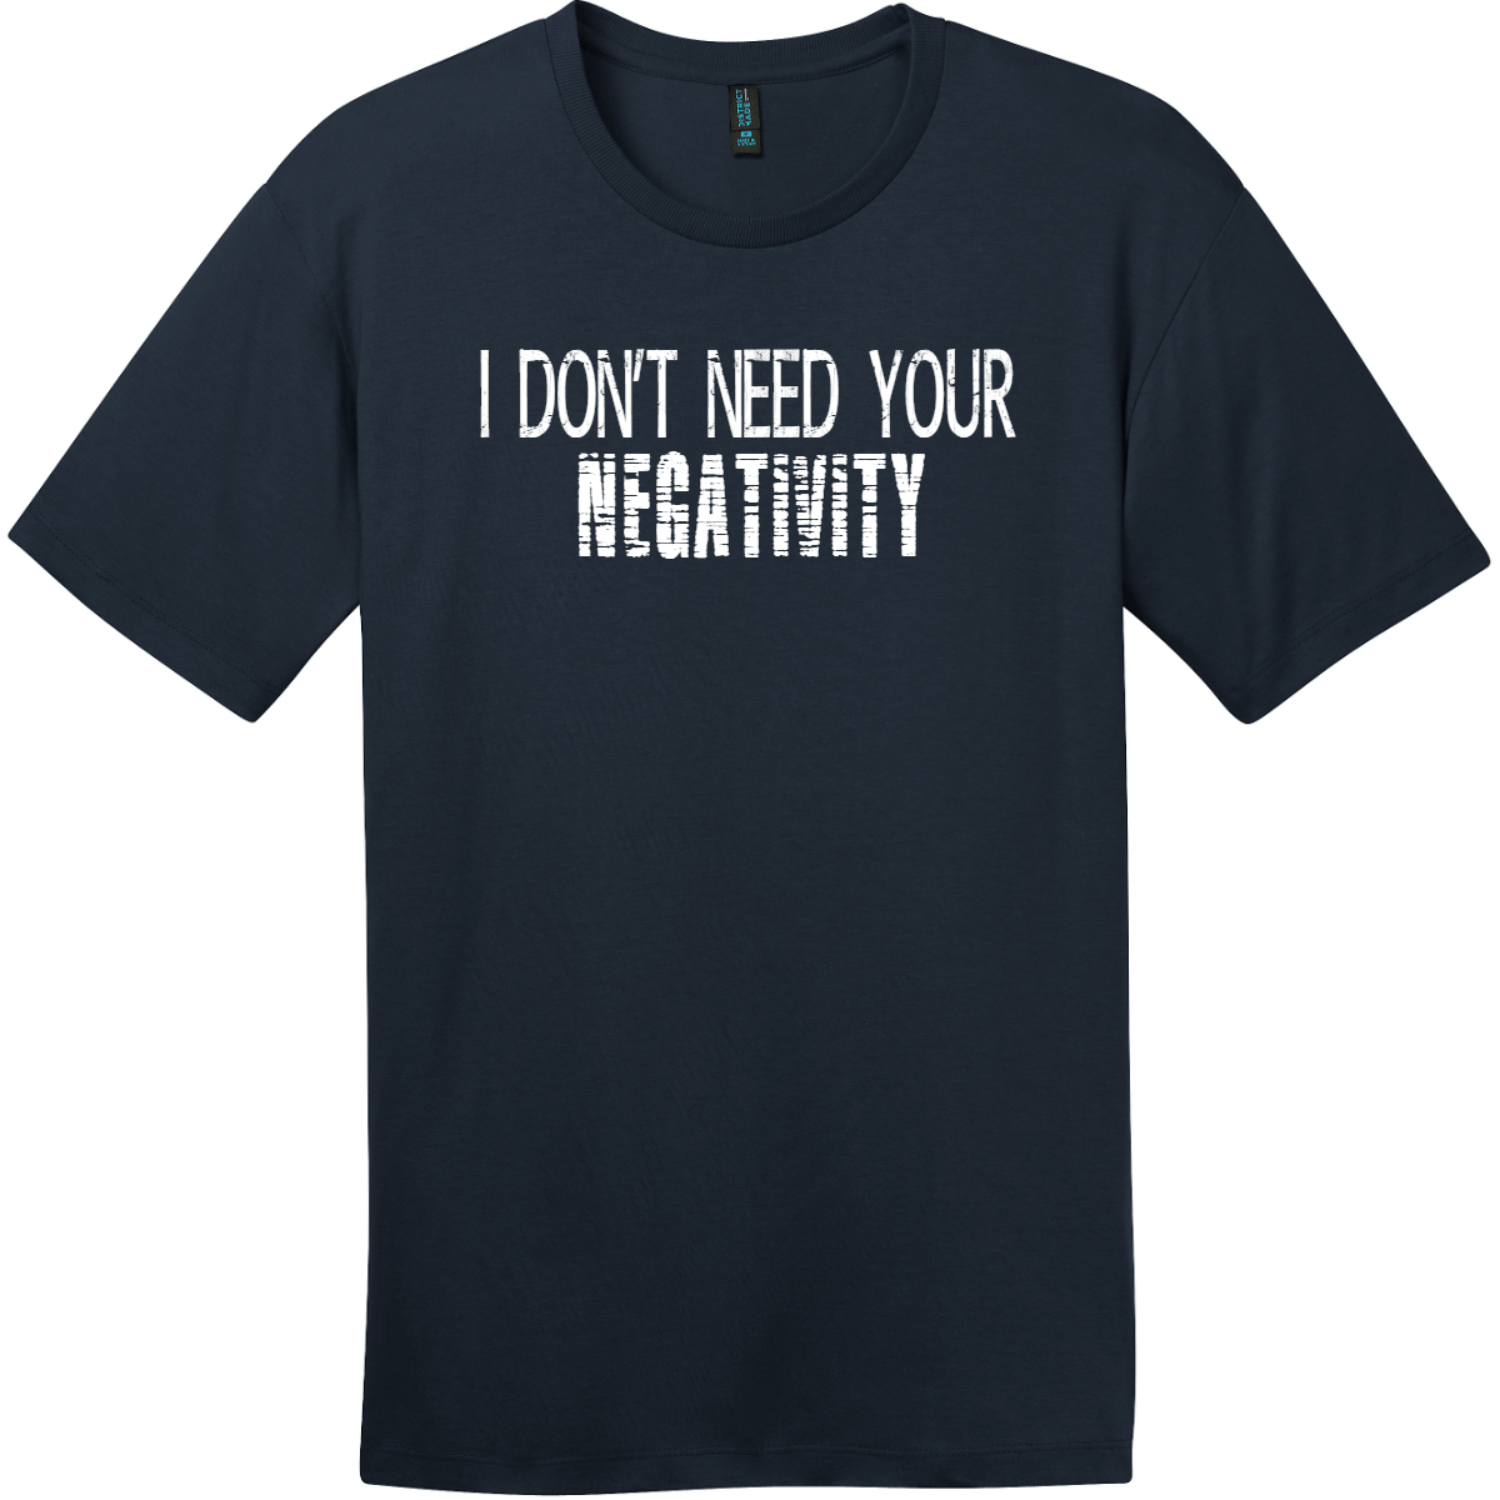 I Don't Need Your Negativity T-Shirt New Navy District Perfect Weight Tee DT104